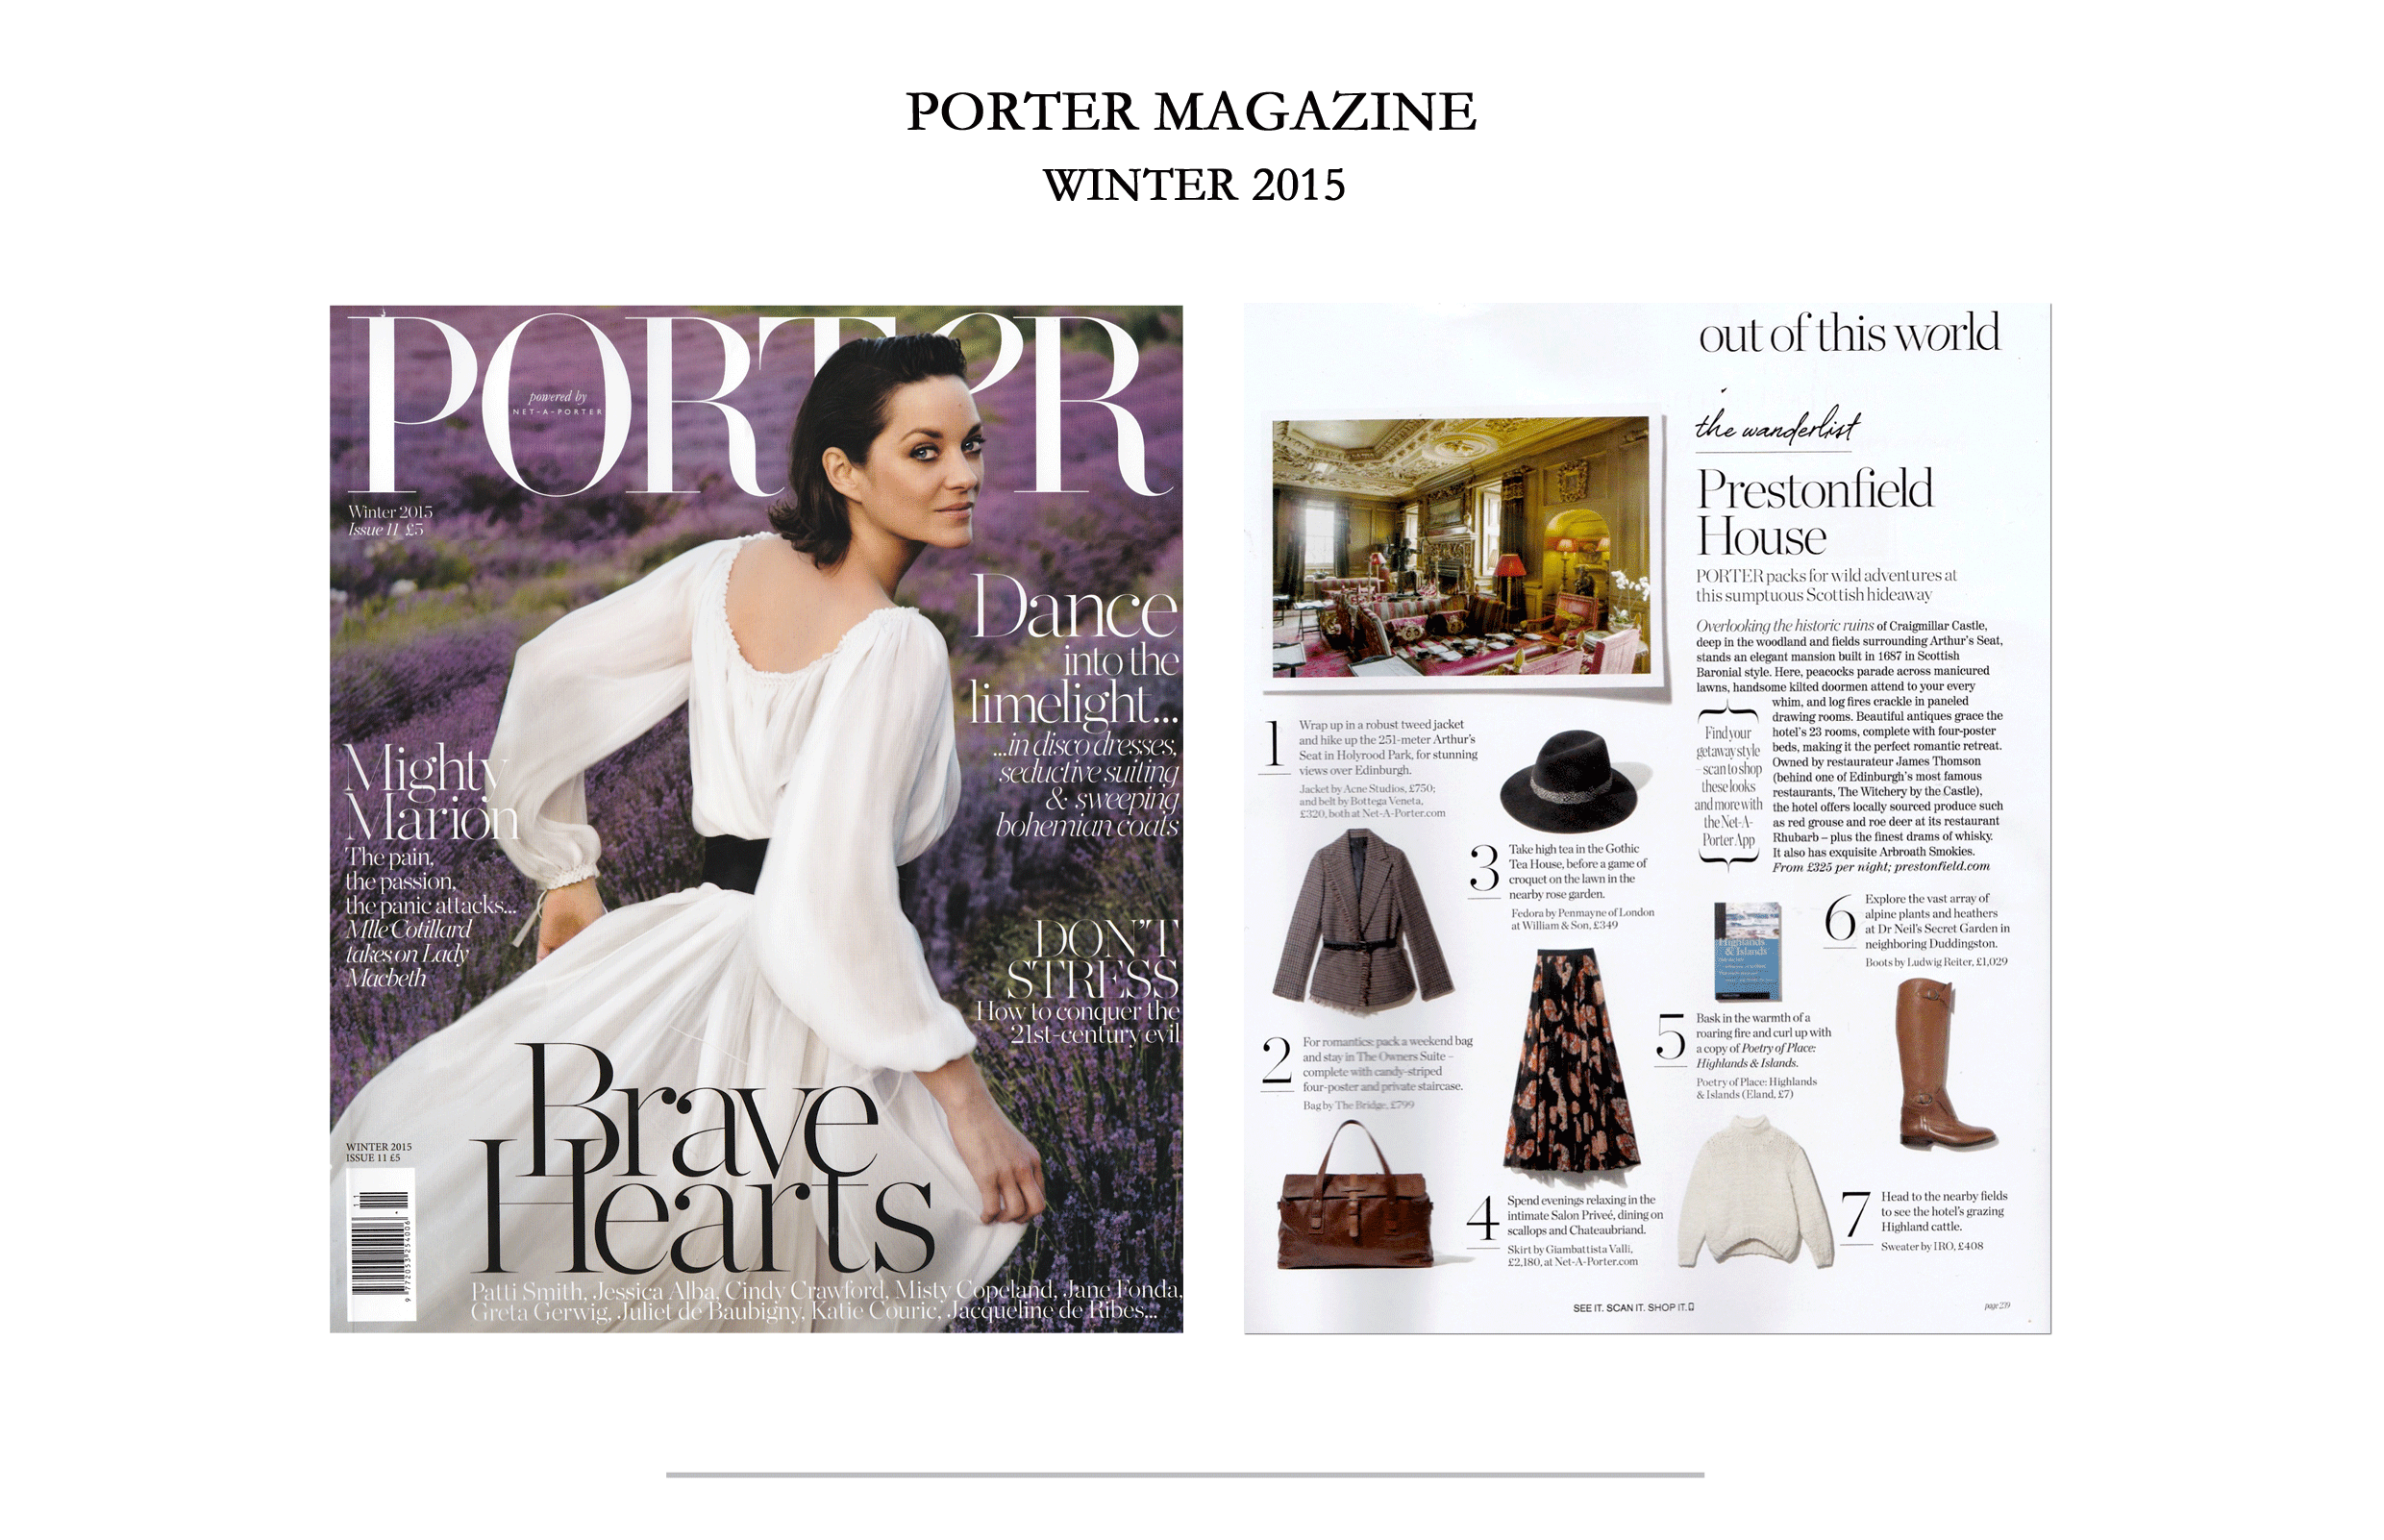 http://www.penmayne.com/blogs/news/70209923-penmayne-press-porter-magazine-winter-2015